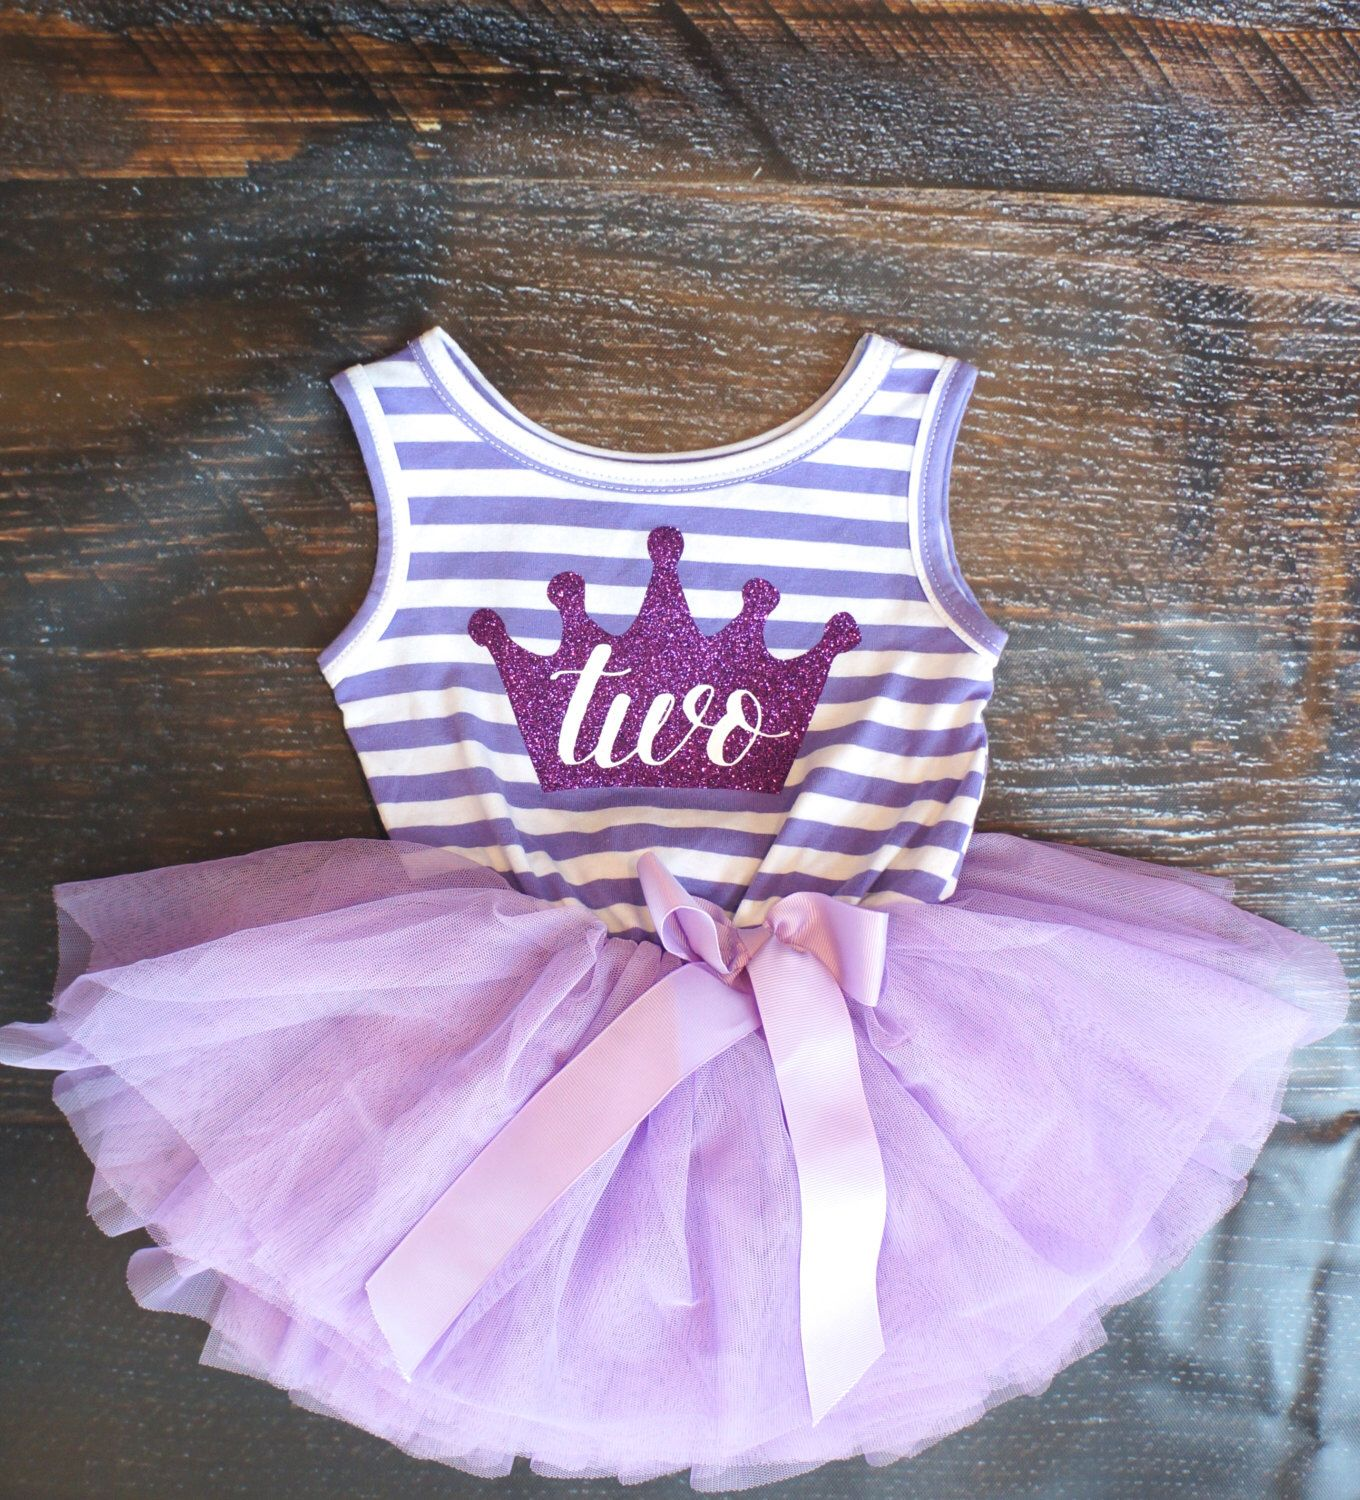 Second Birthday Outfit Dress With Purple Crown And Purple